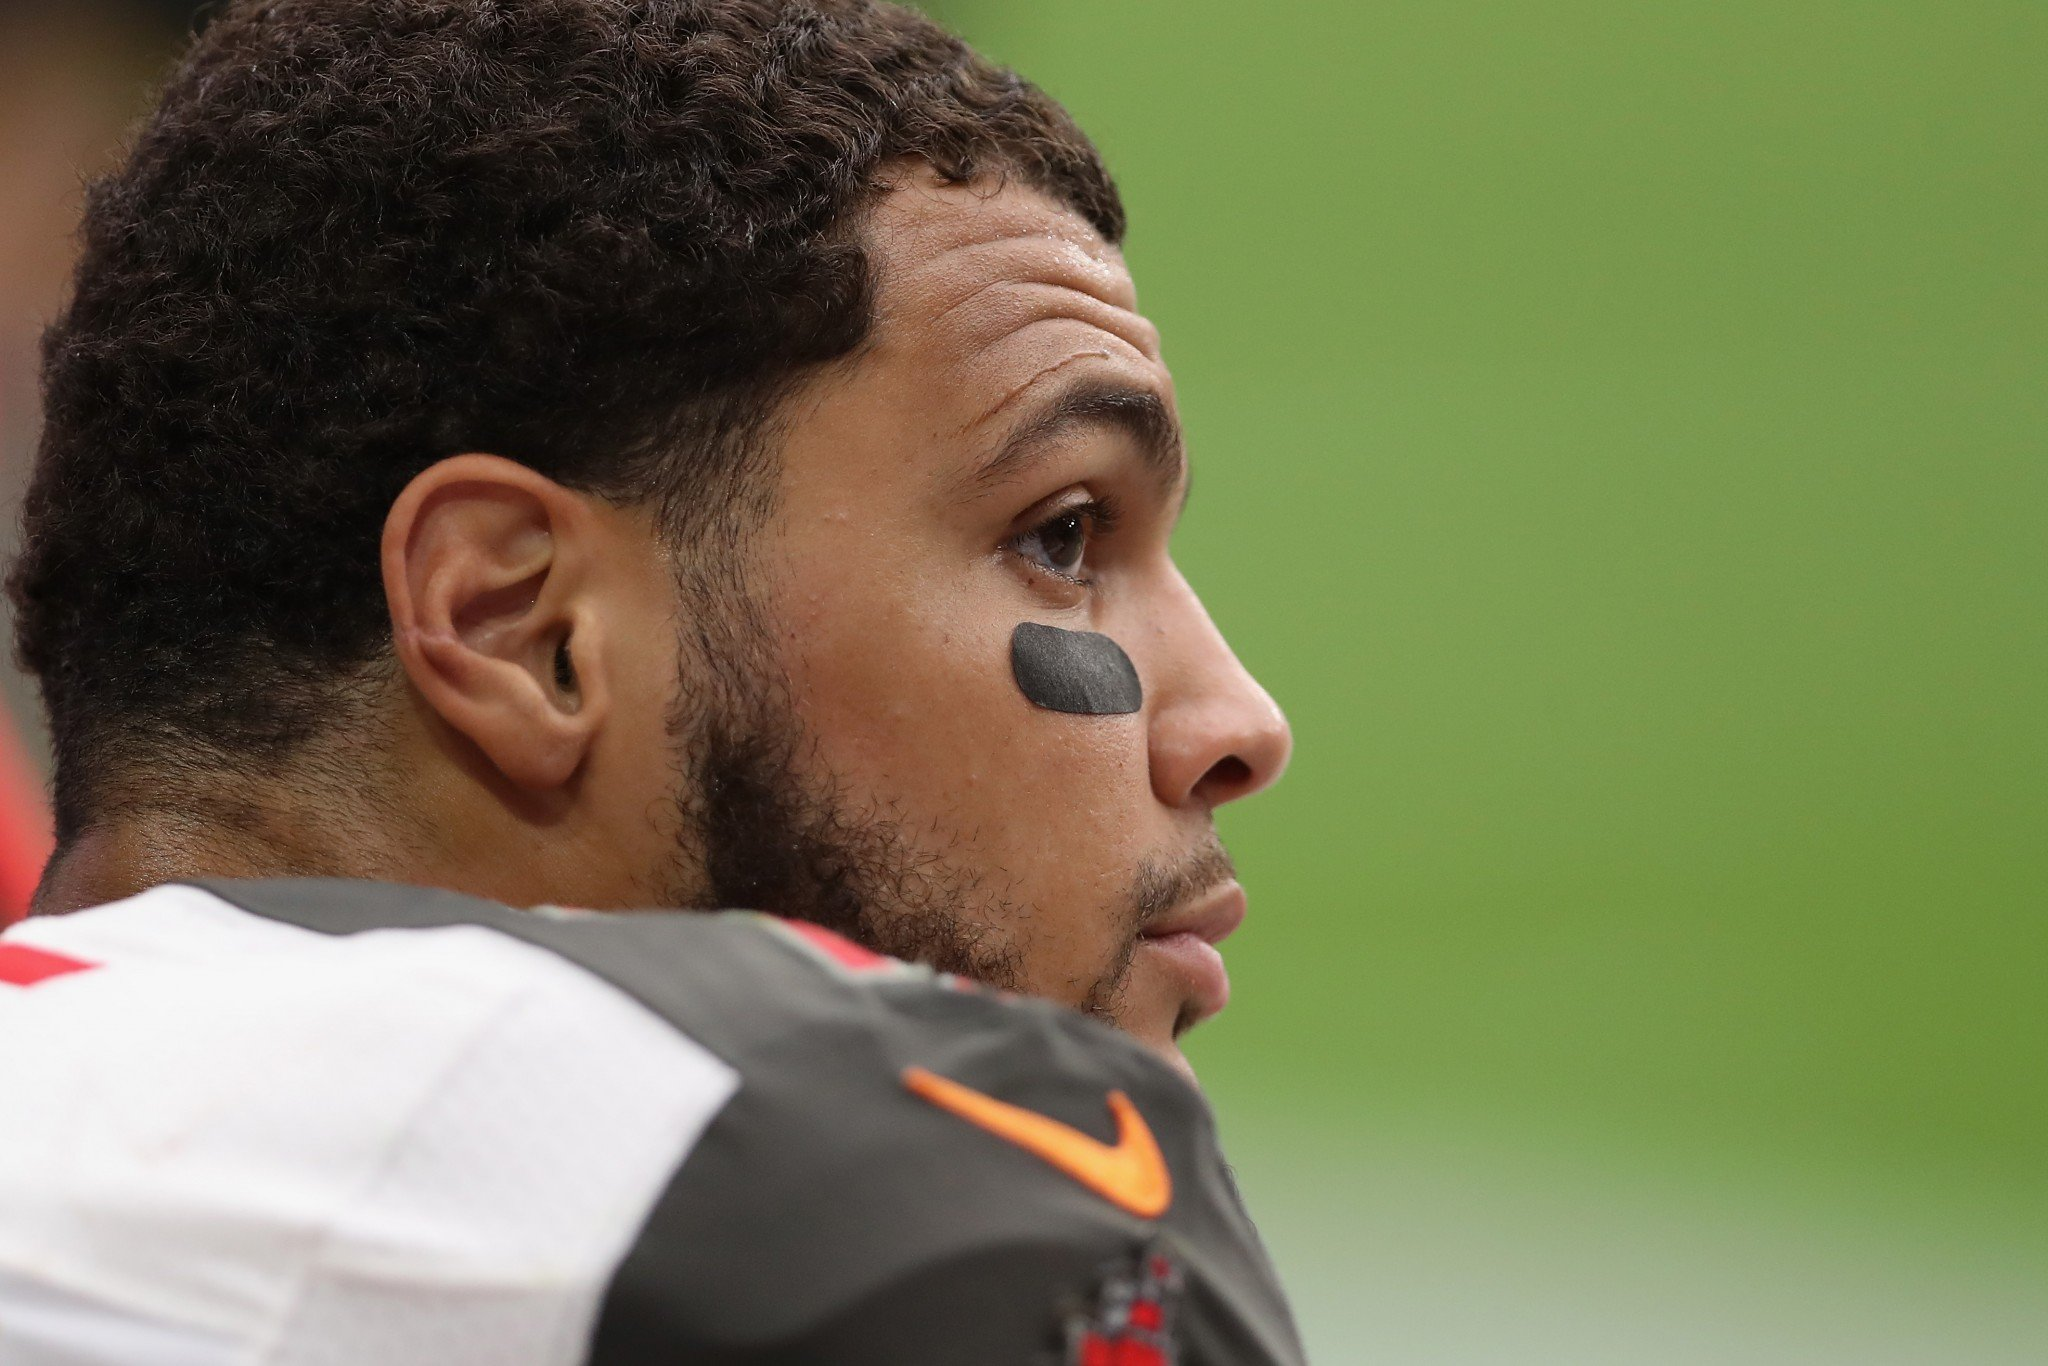 Tampa Bay Buccaneers receiver Mike Evans protested Donald Trump but said on social media he didn't vote. (Getty Images)